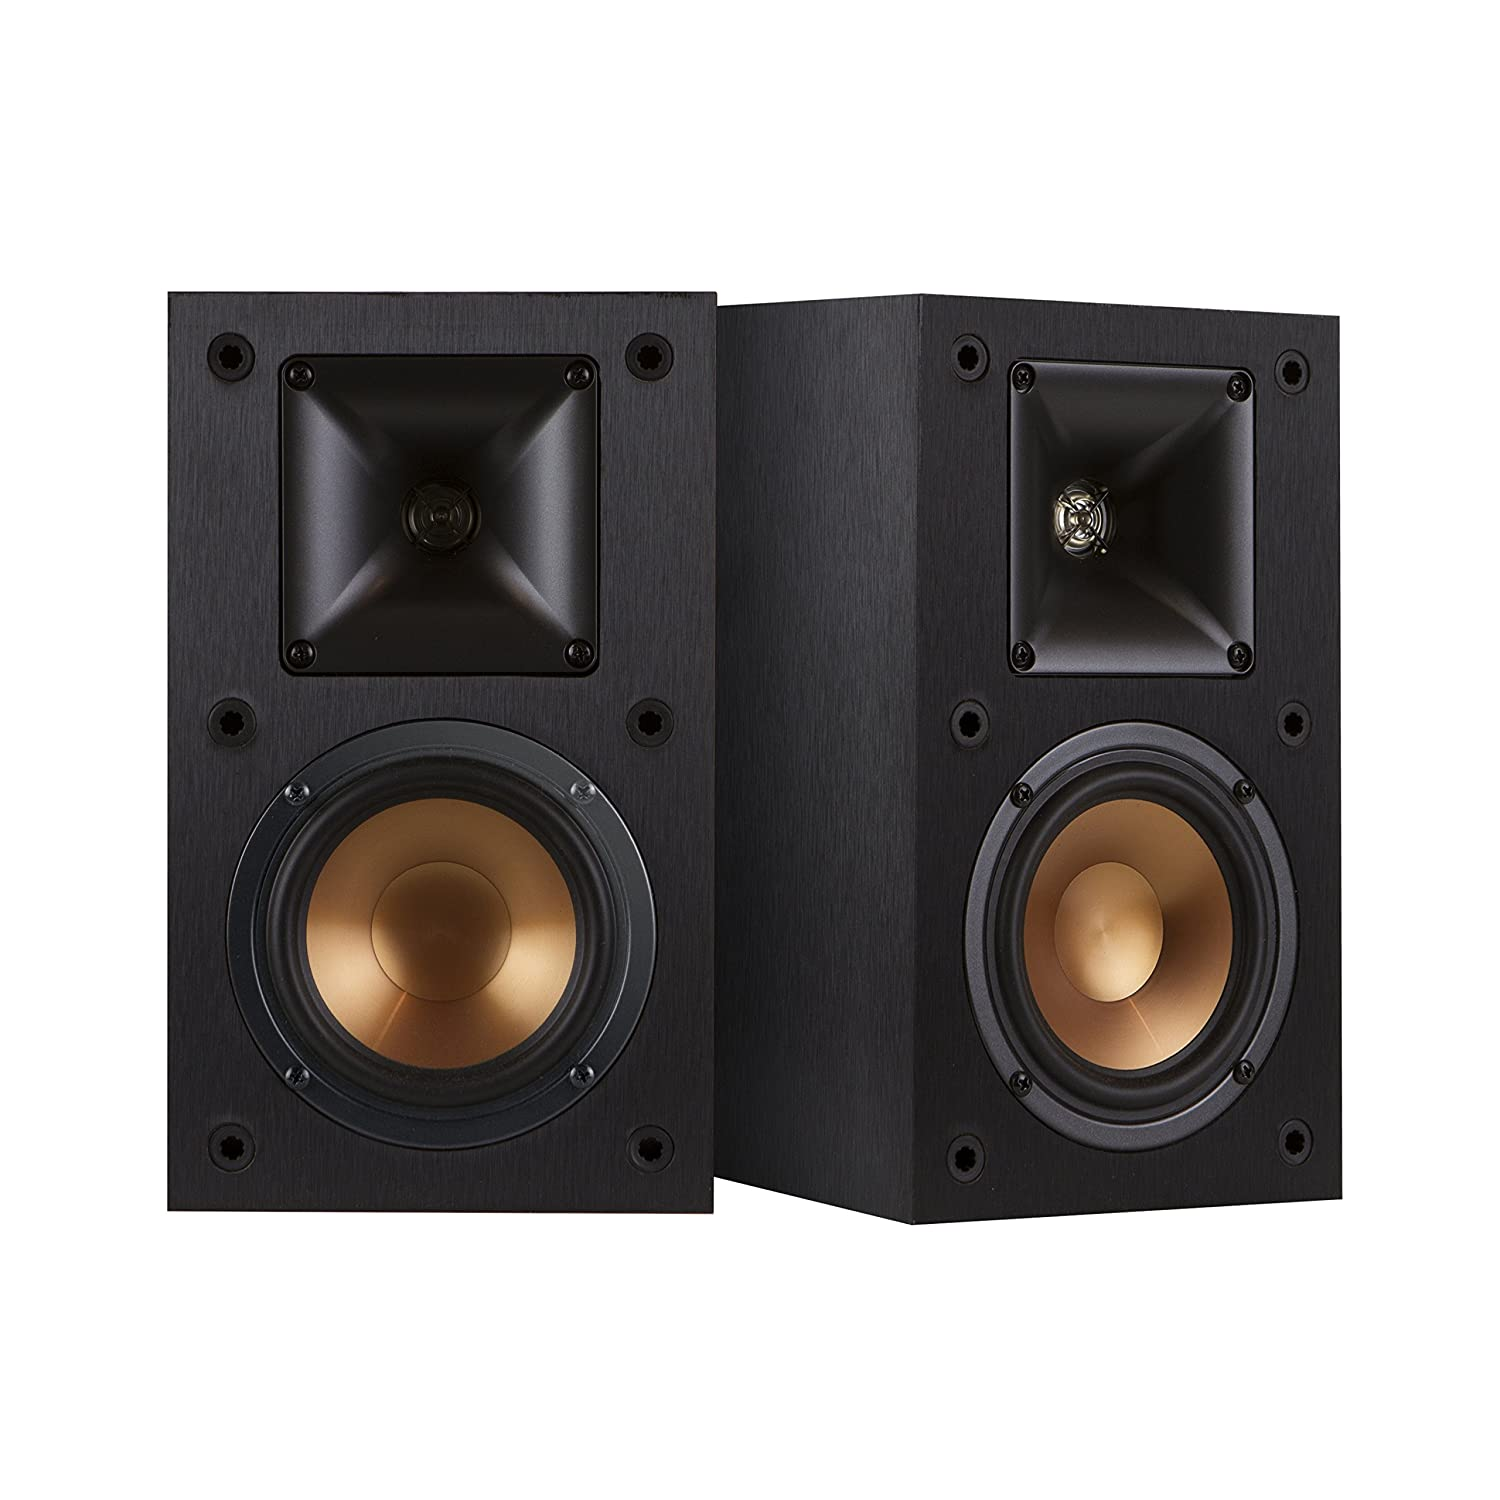 klipsch powered speakers. klipsch r-14m 4-inch reference bookshelf speakers (pair, black) powered k